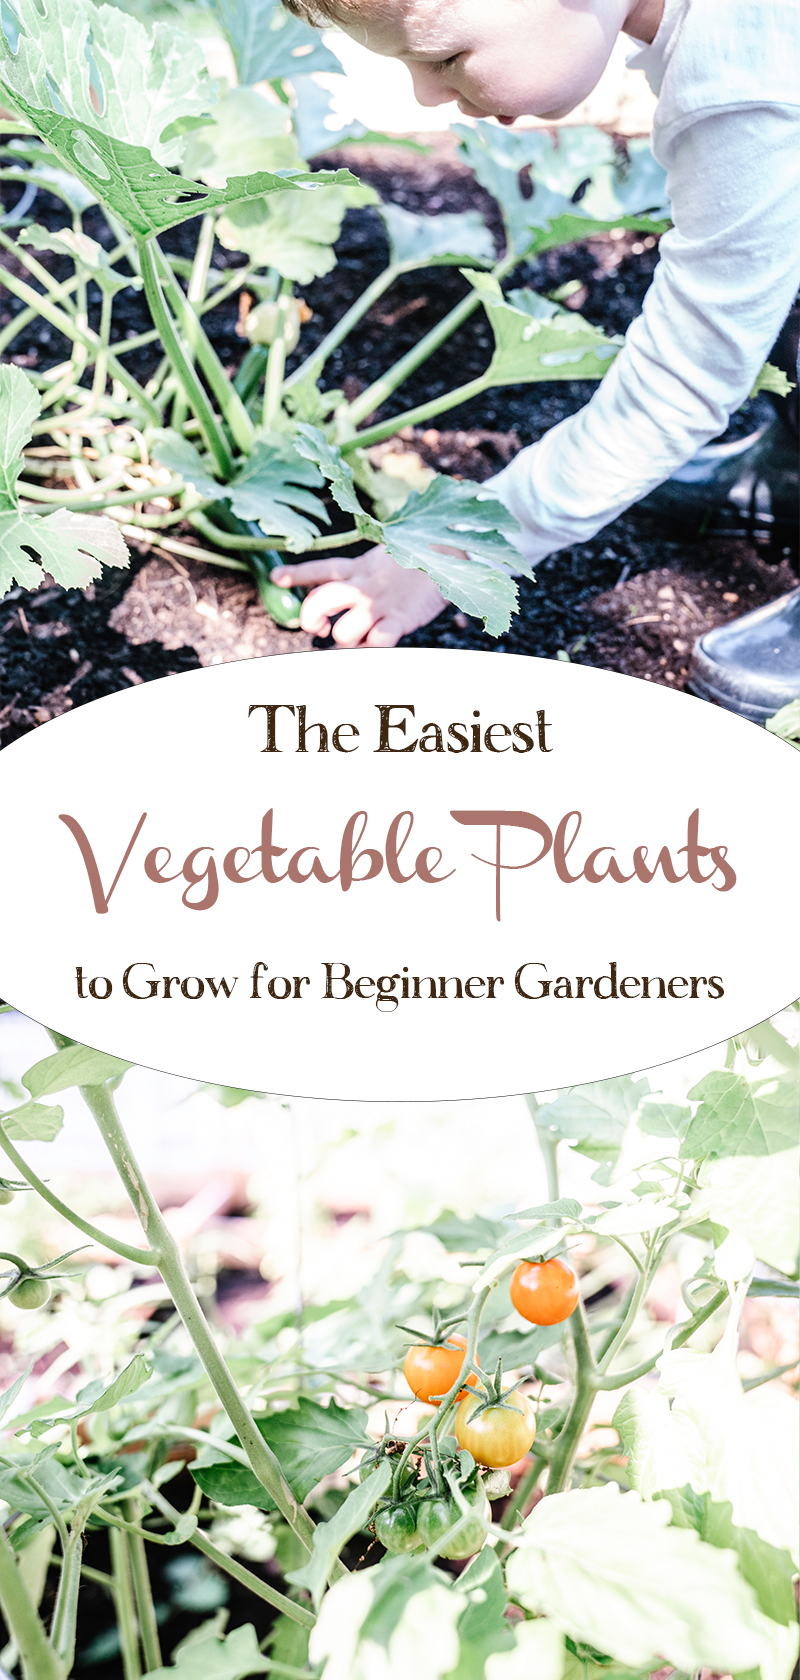 The-Easiest-Vegetable-Plants-To-Grow-For-Beginner-Gardeners